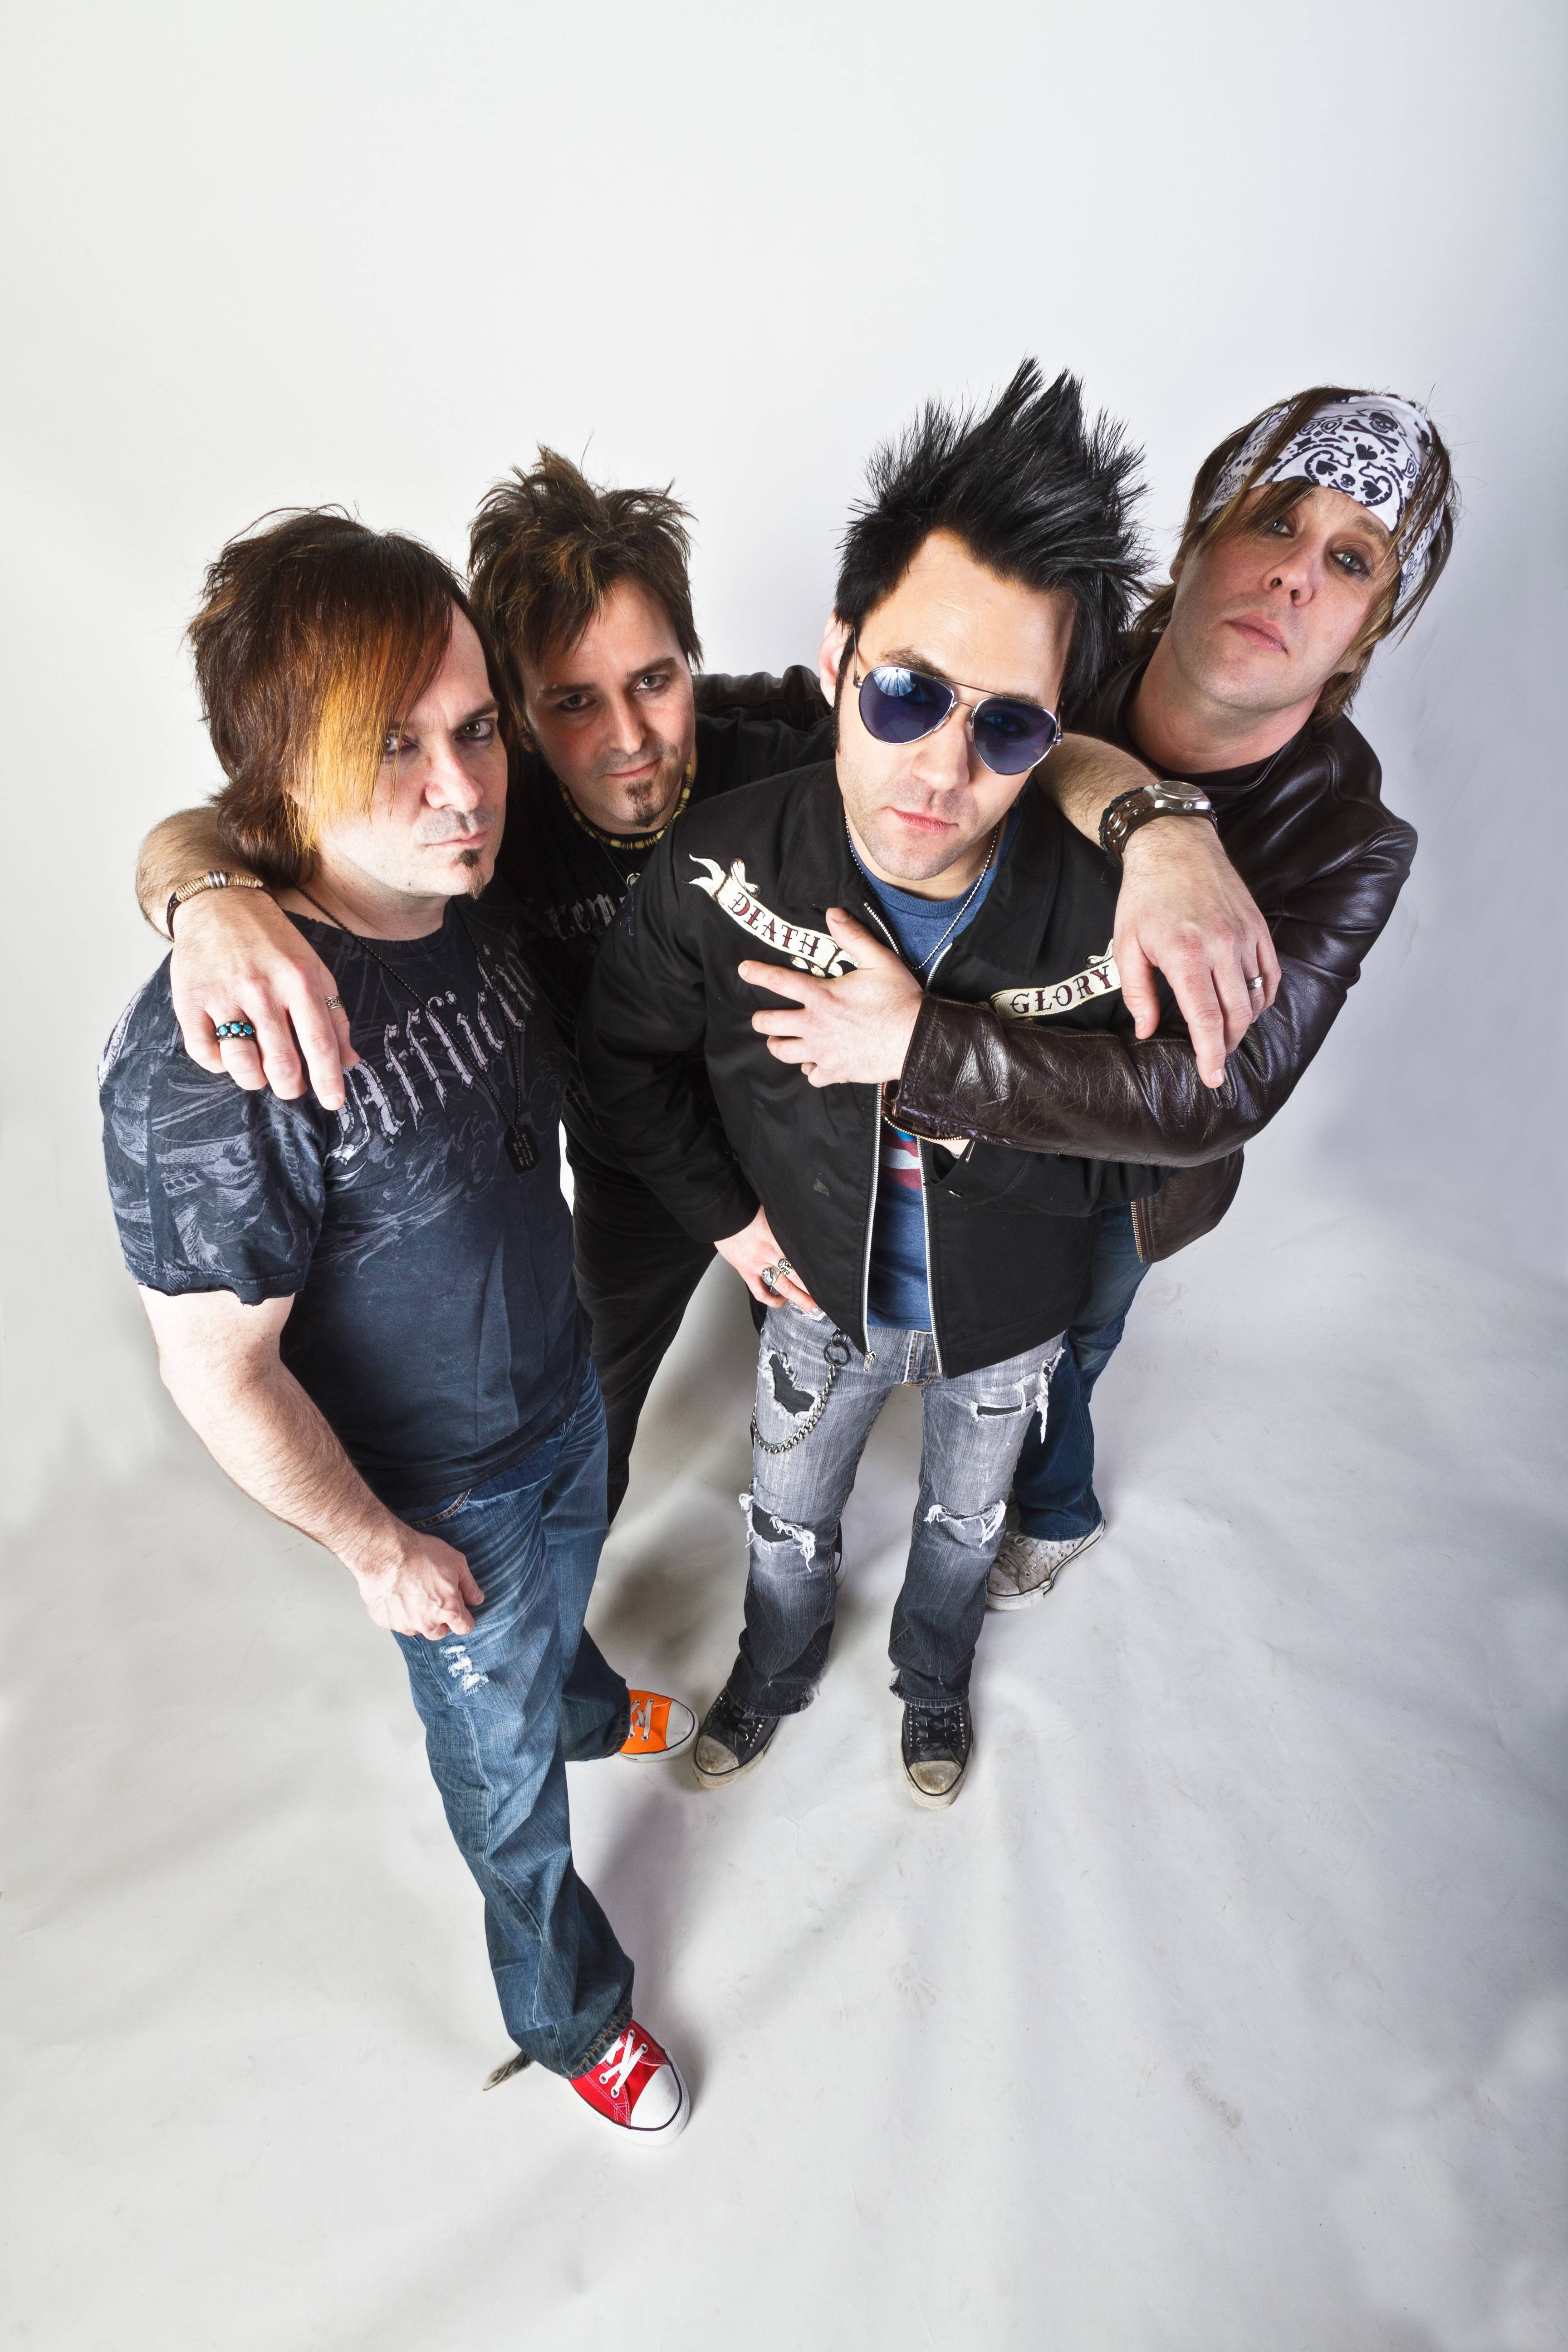 The party band Trash Martini headlines at Mickey Finn's Brewery in Libertyville.